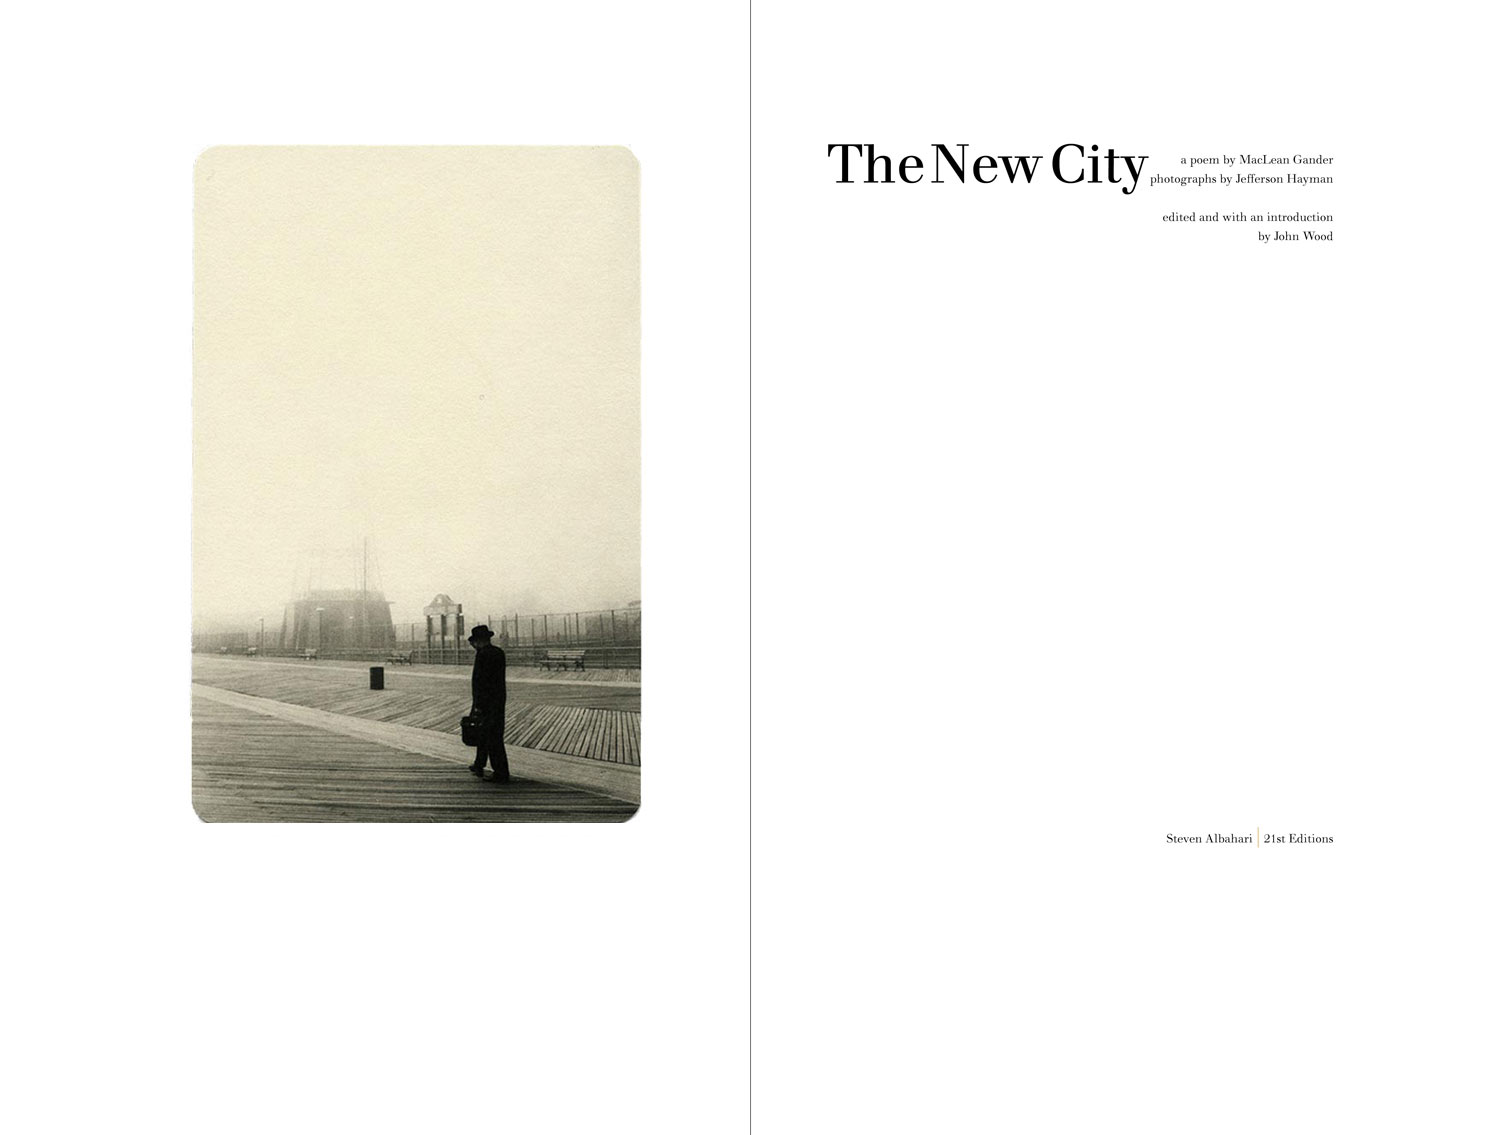 Jefferson Hayman: The New City